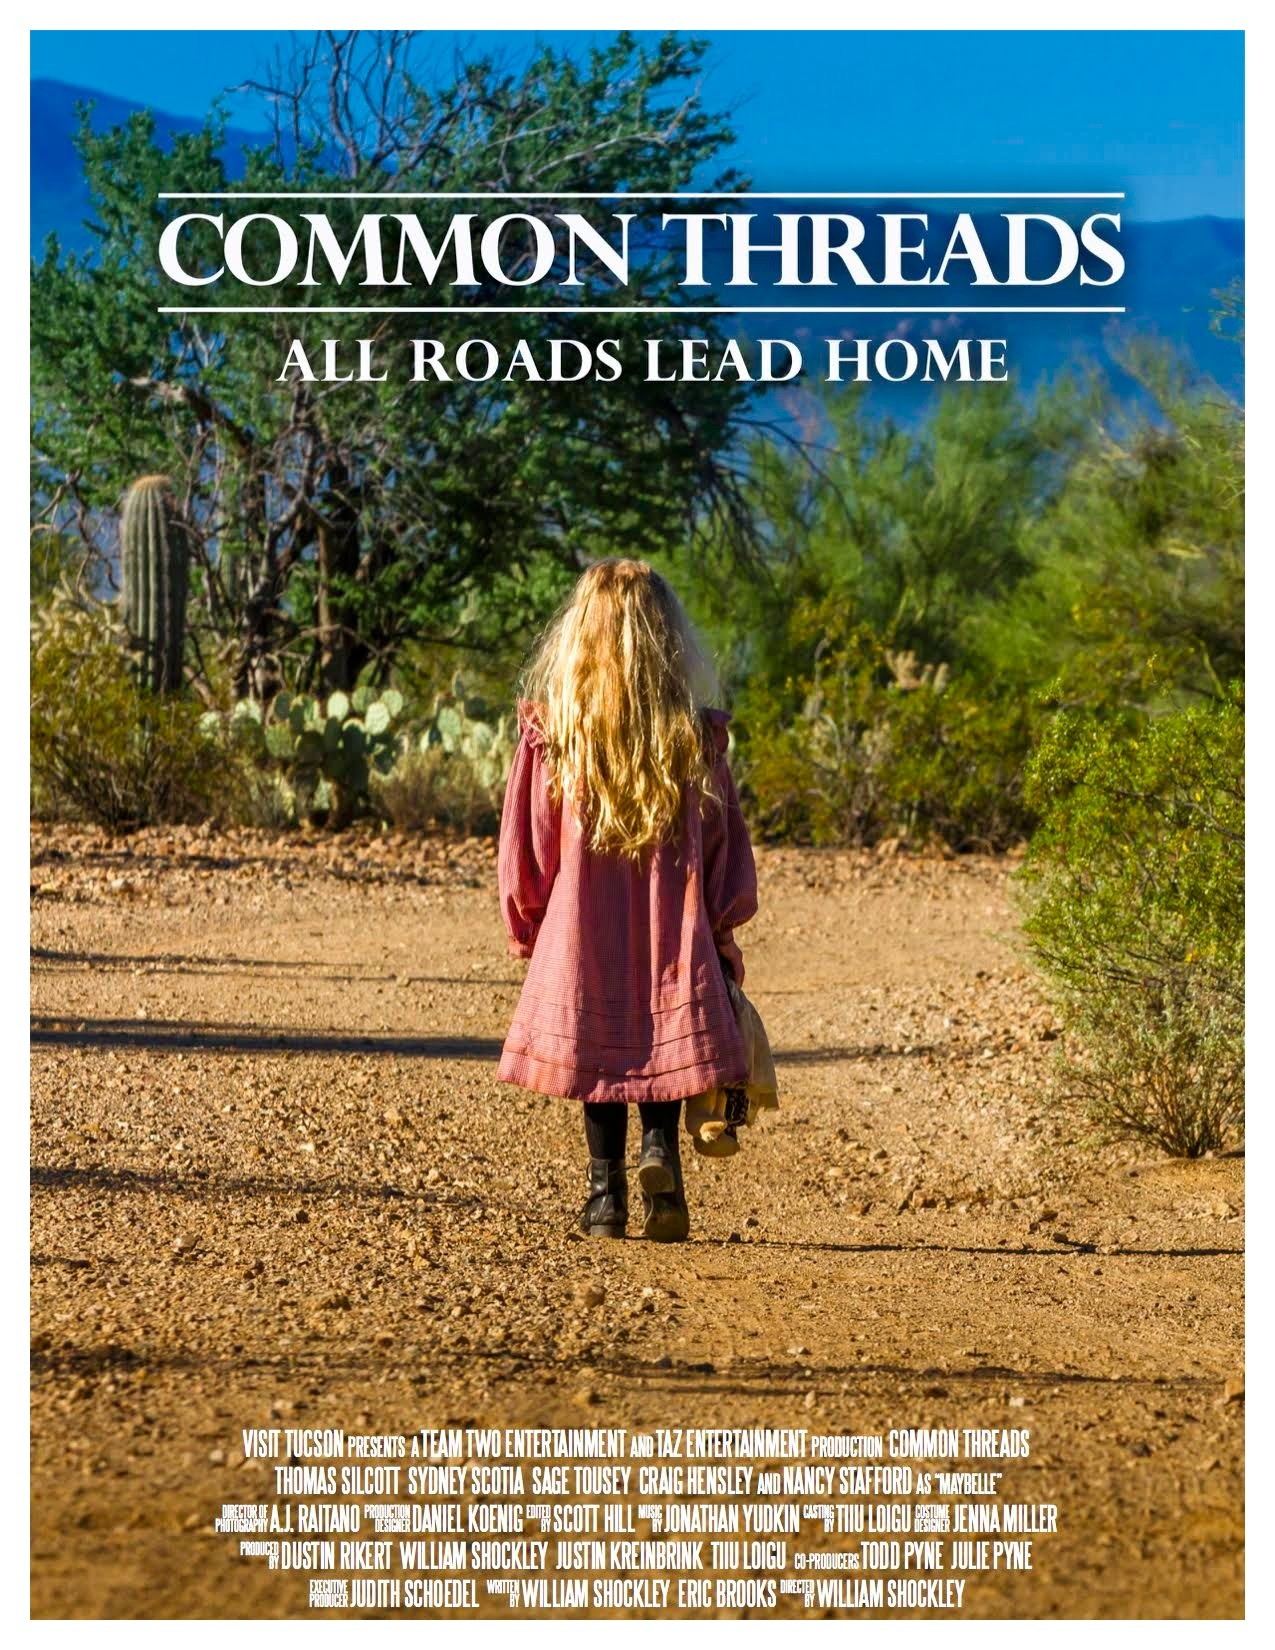 Common Threads by Team Two Entertainment. Directed by William Shockley.